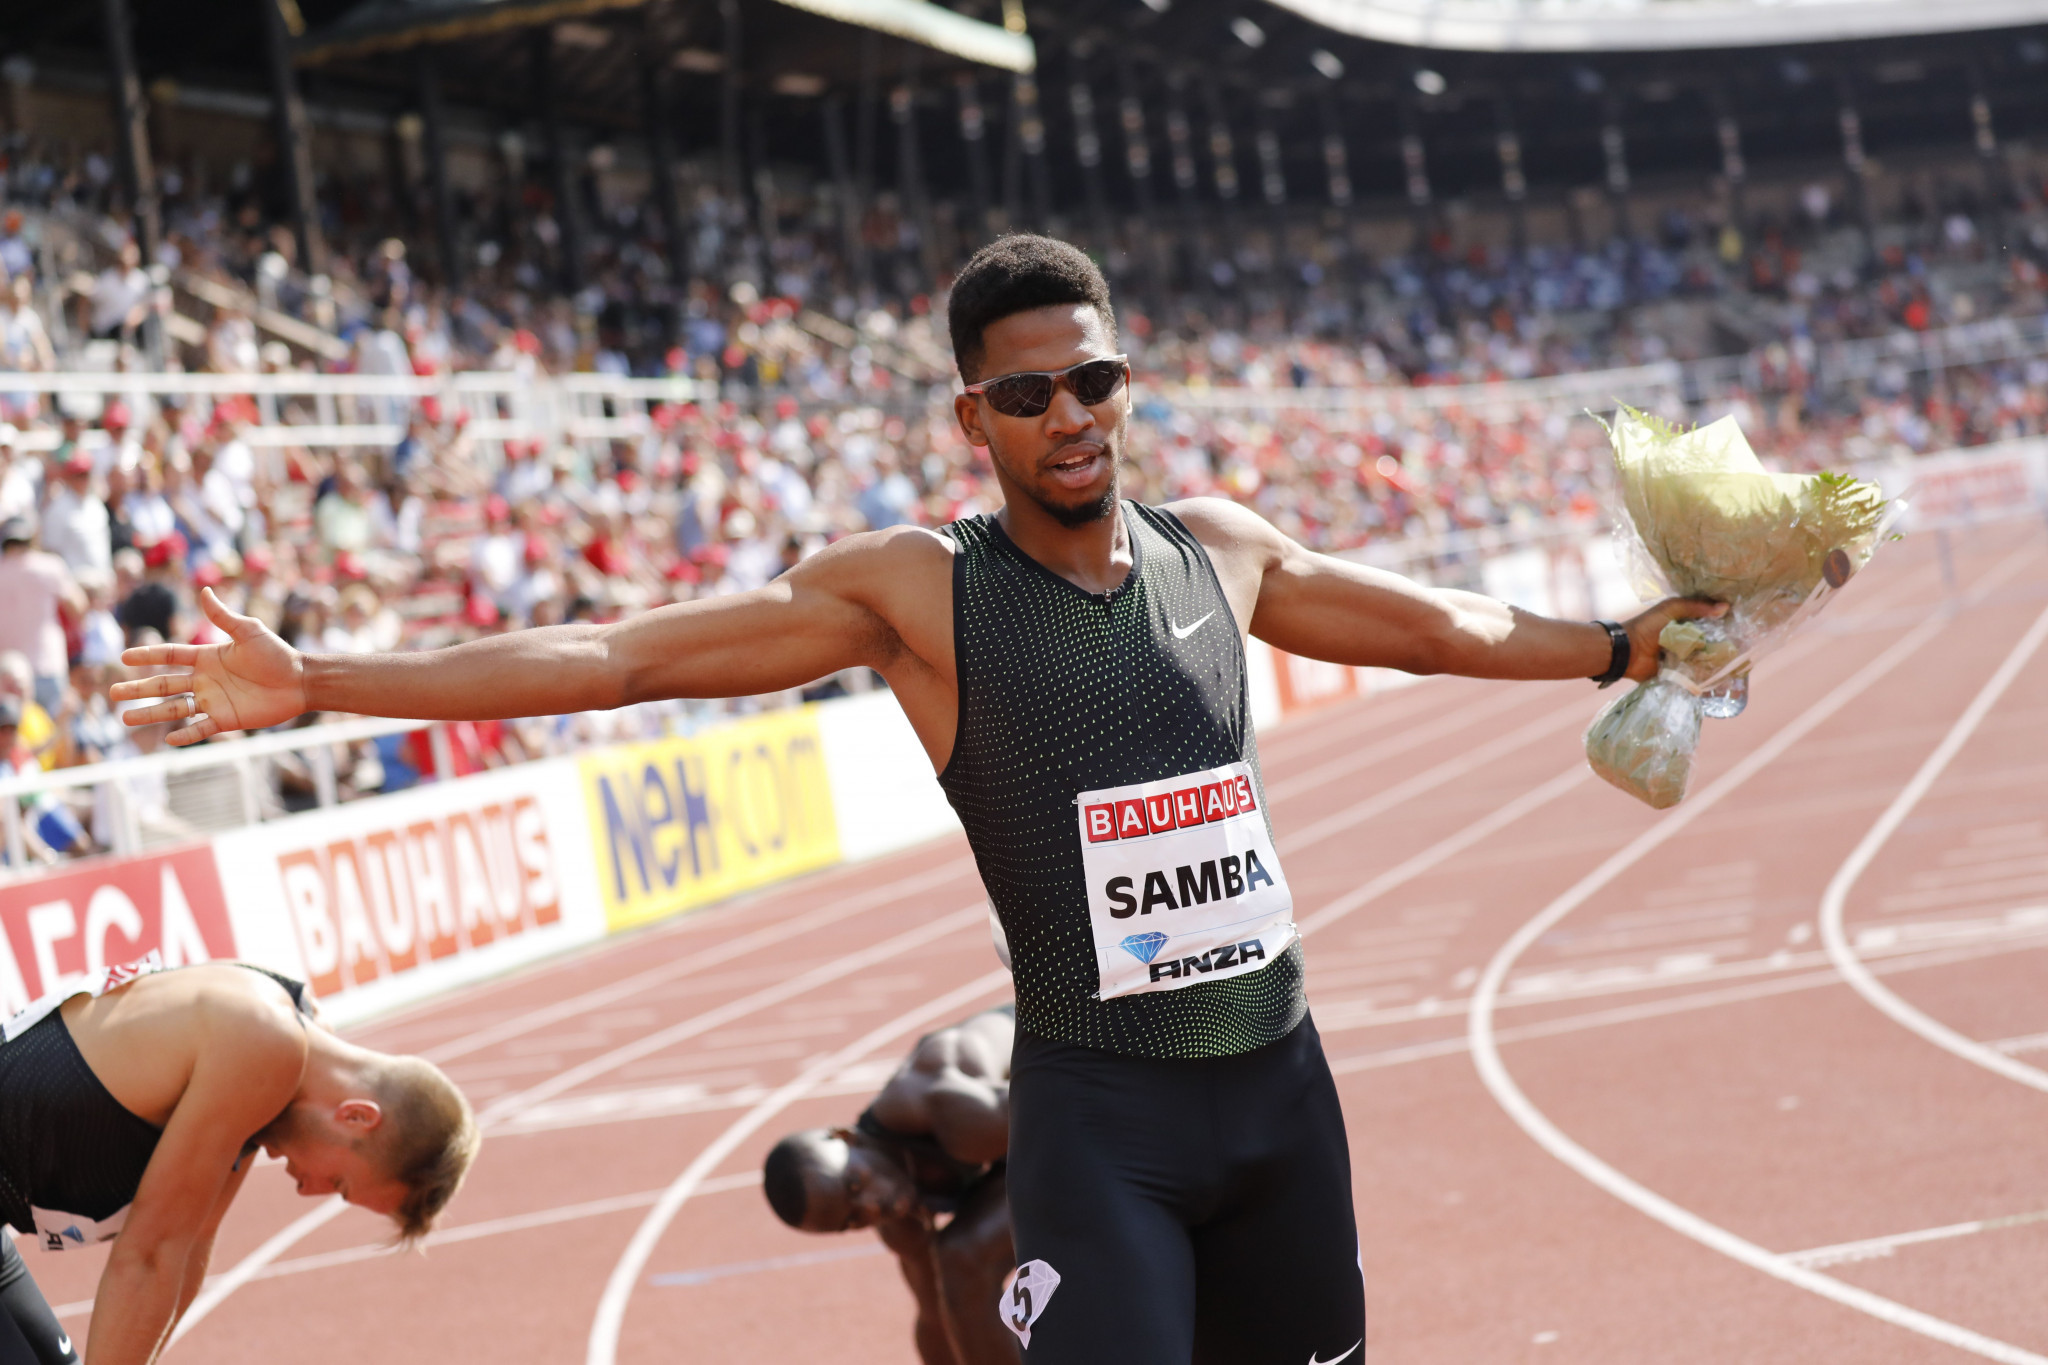 Samba becomes second man to break 47 seconds for 400m hurdles at IAAF Diamond League meeting in Paris